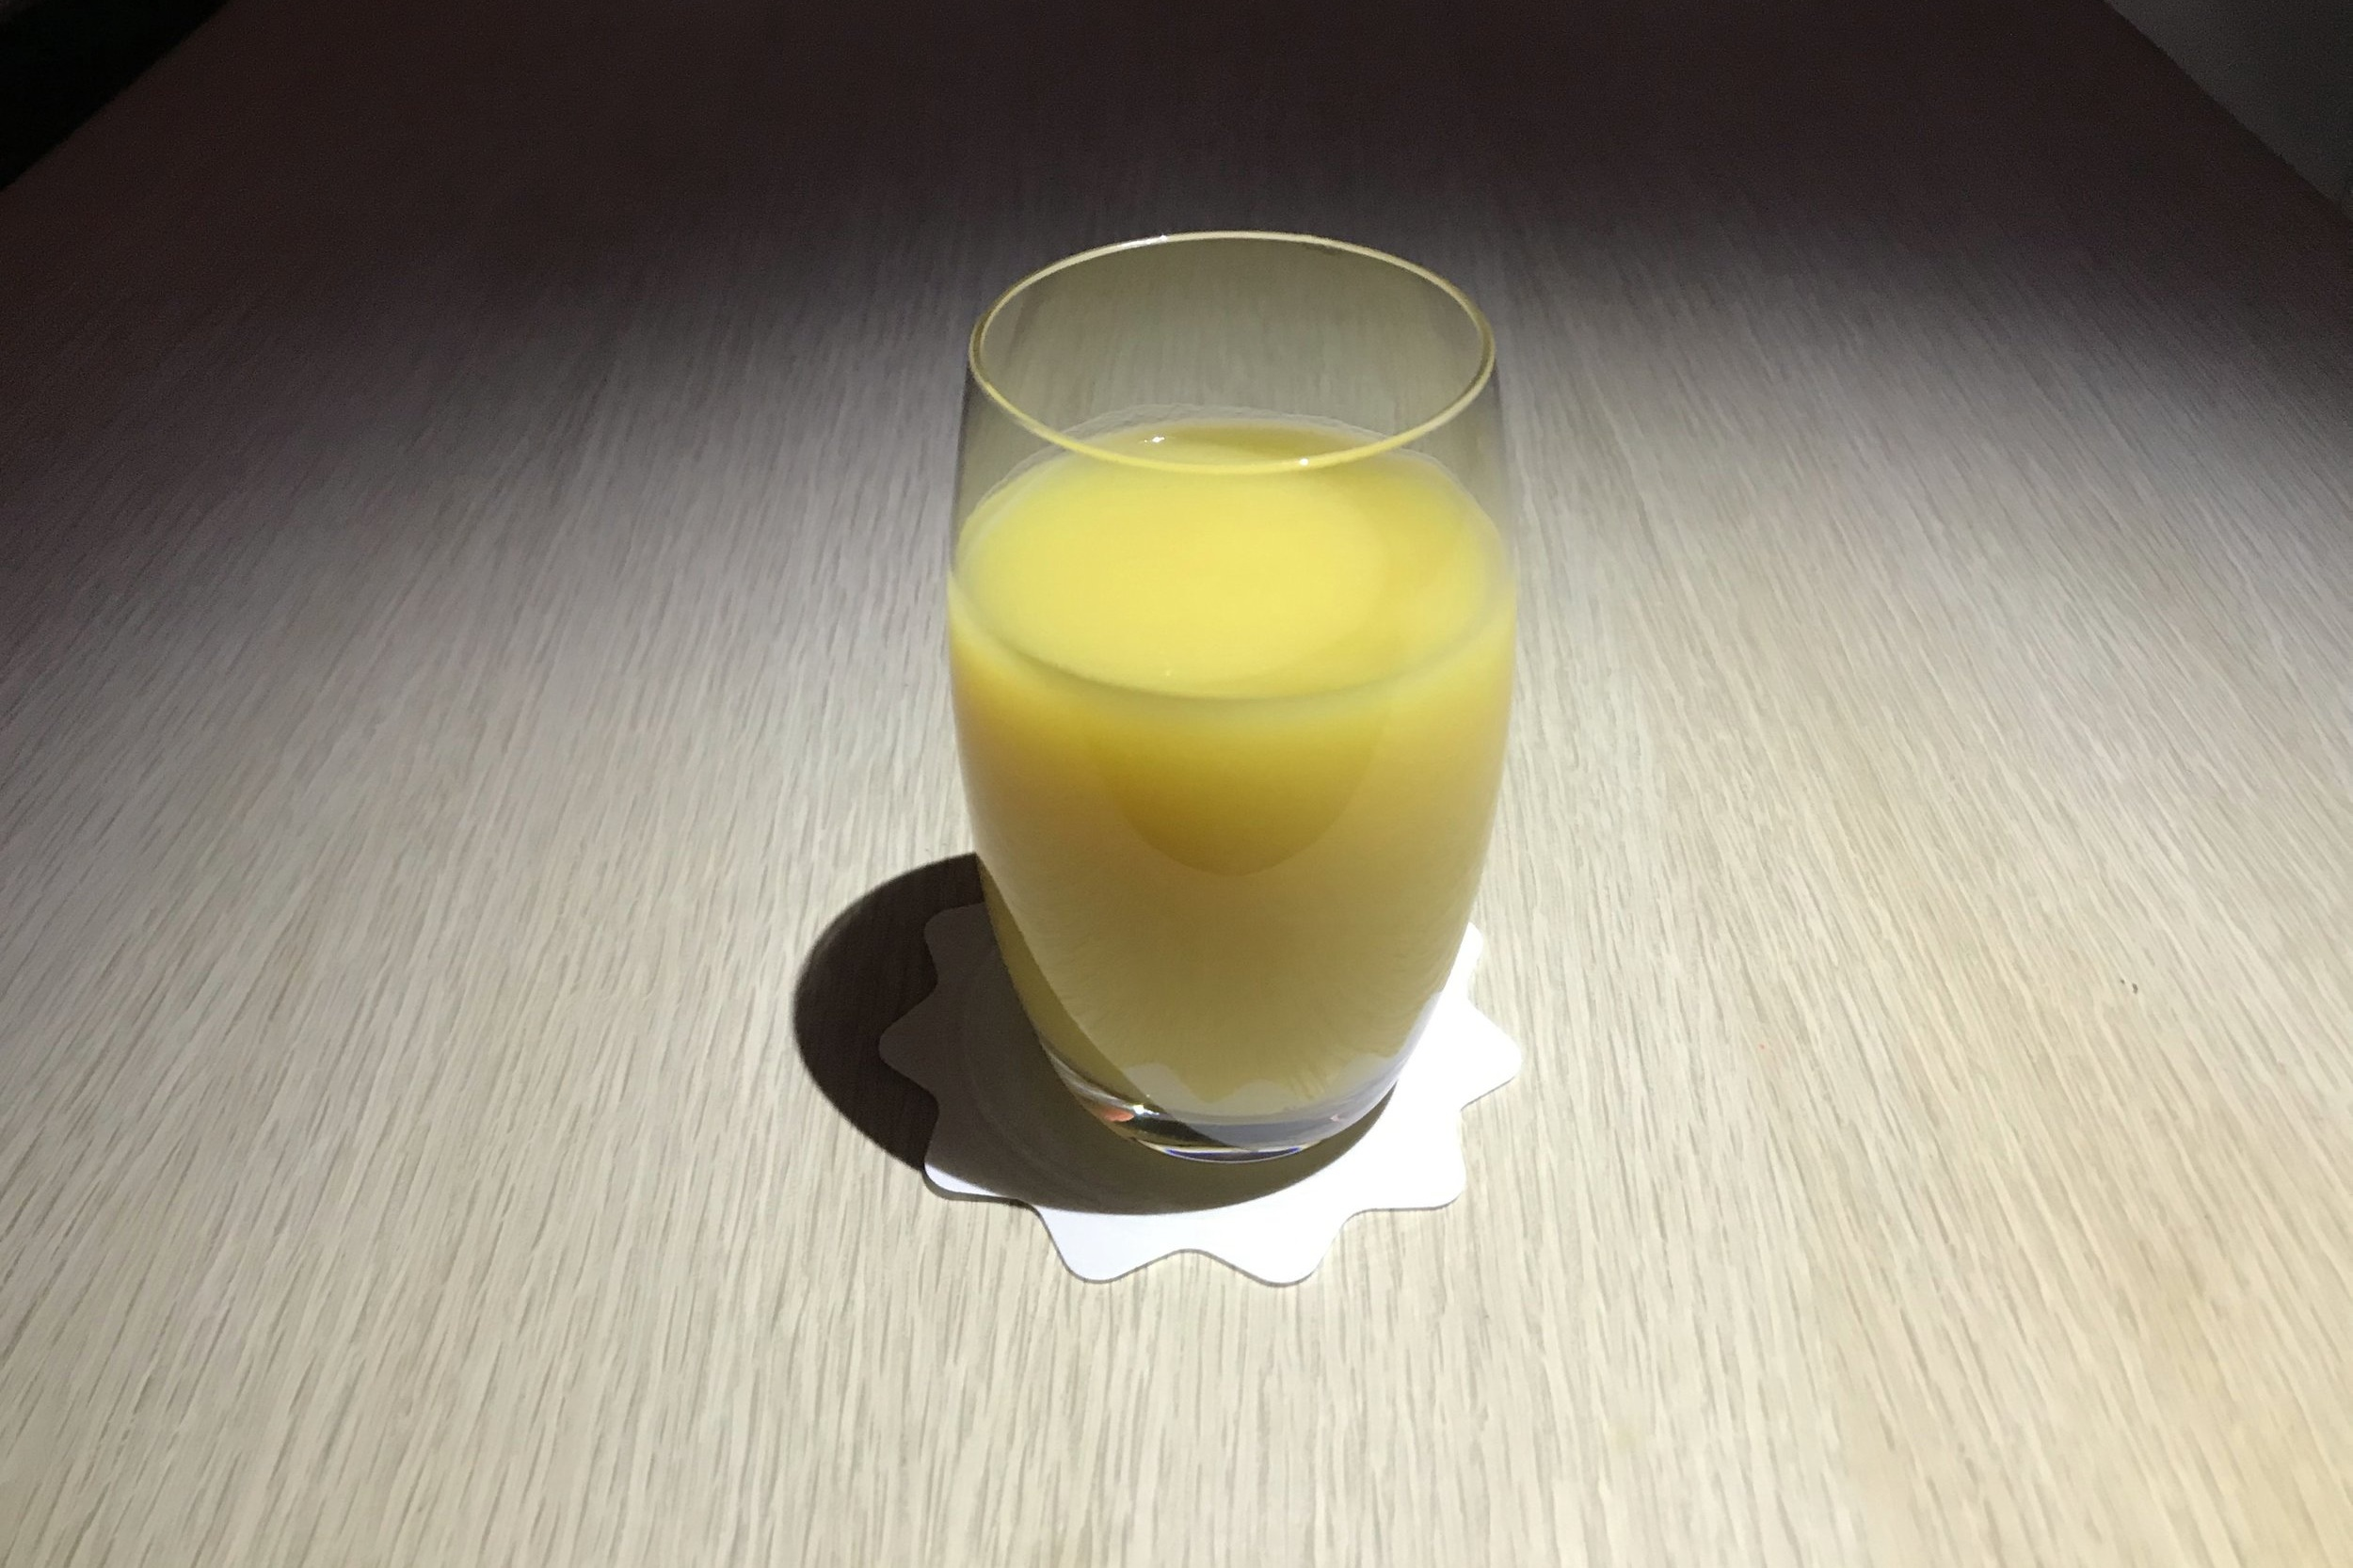 Asiana Airlines First Class – Pineapple juice